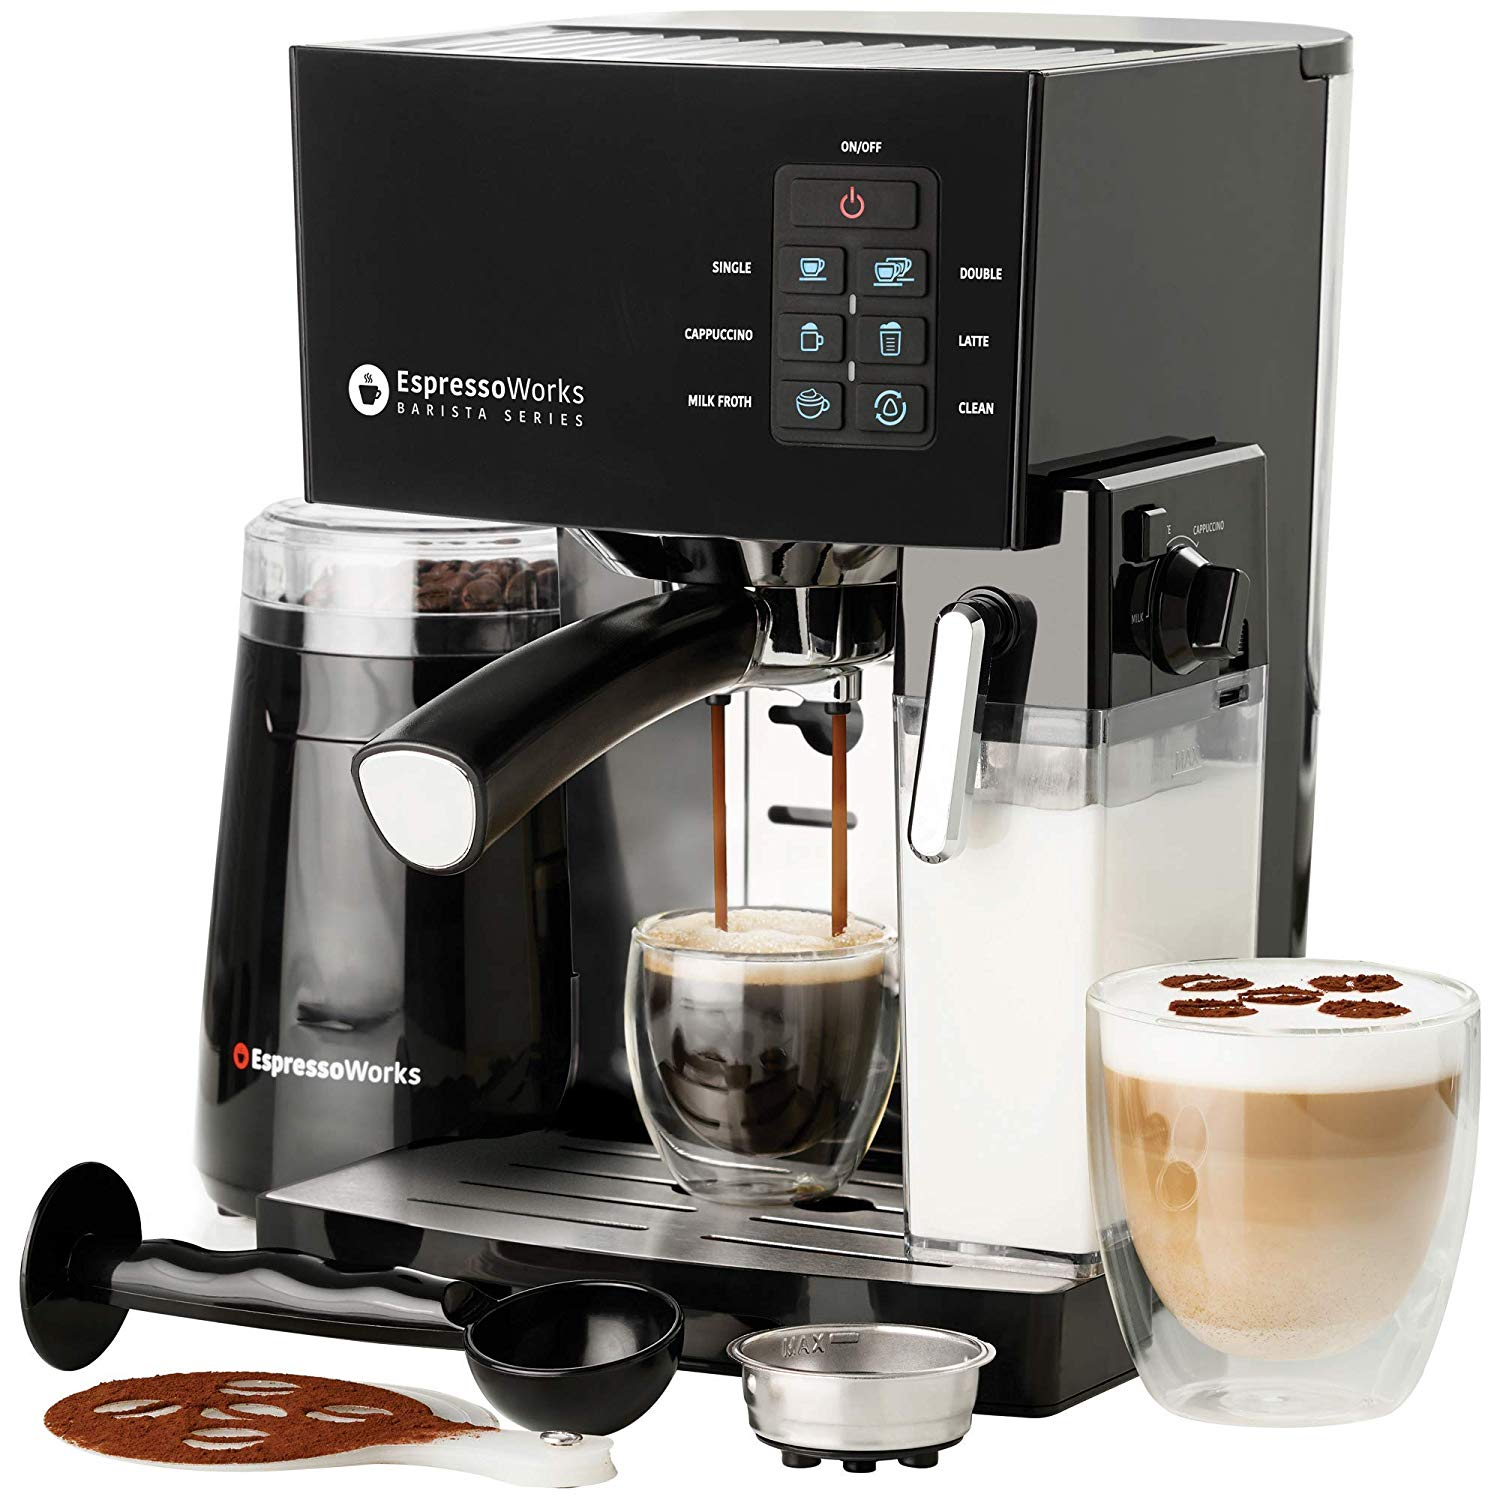 Barista Bundle Espresso Machine & Cappuccino Maker by EspressoWorks